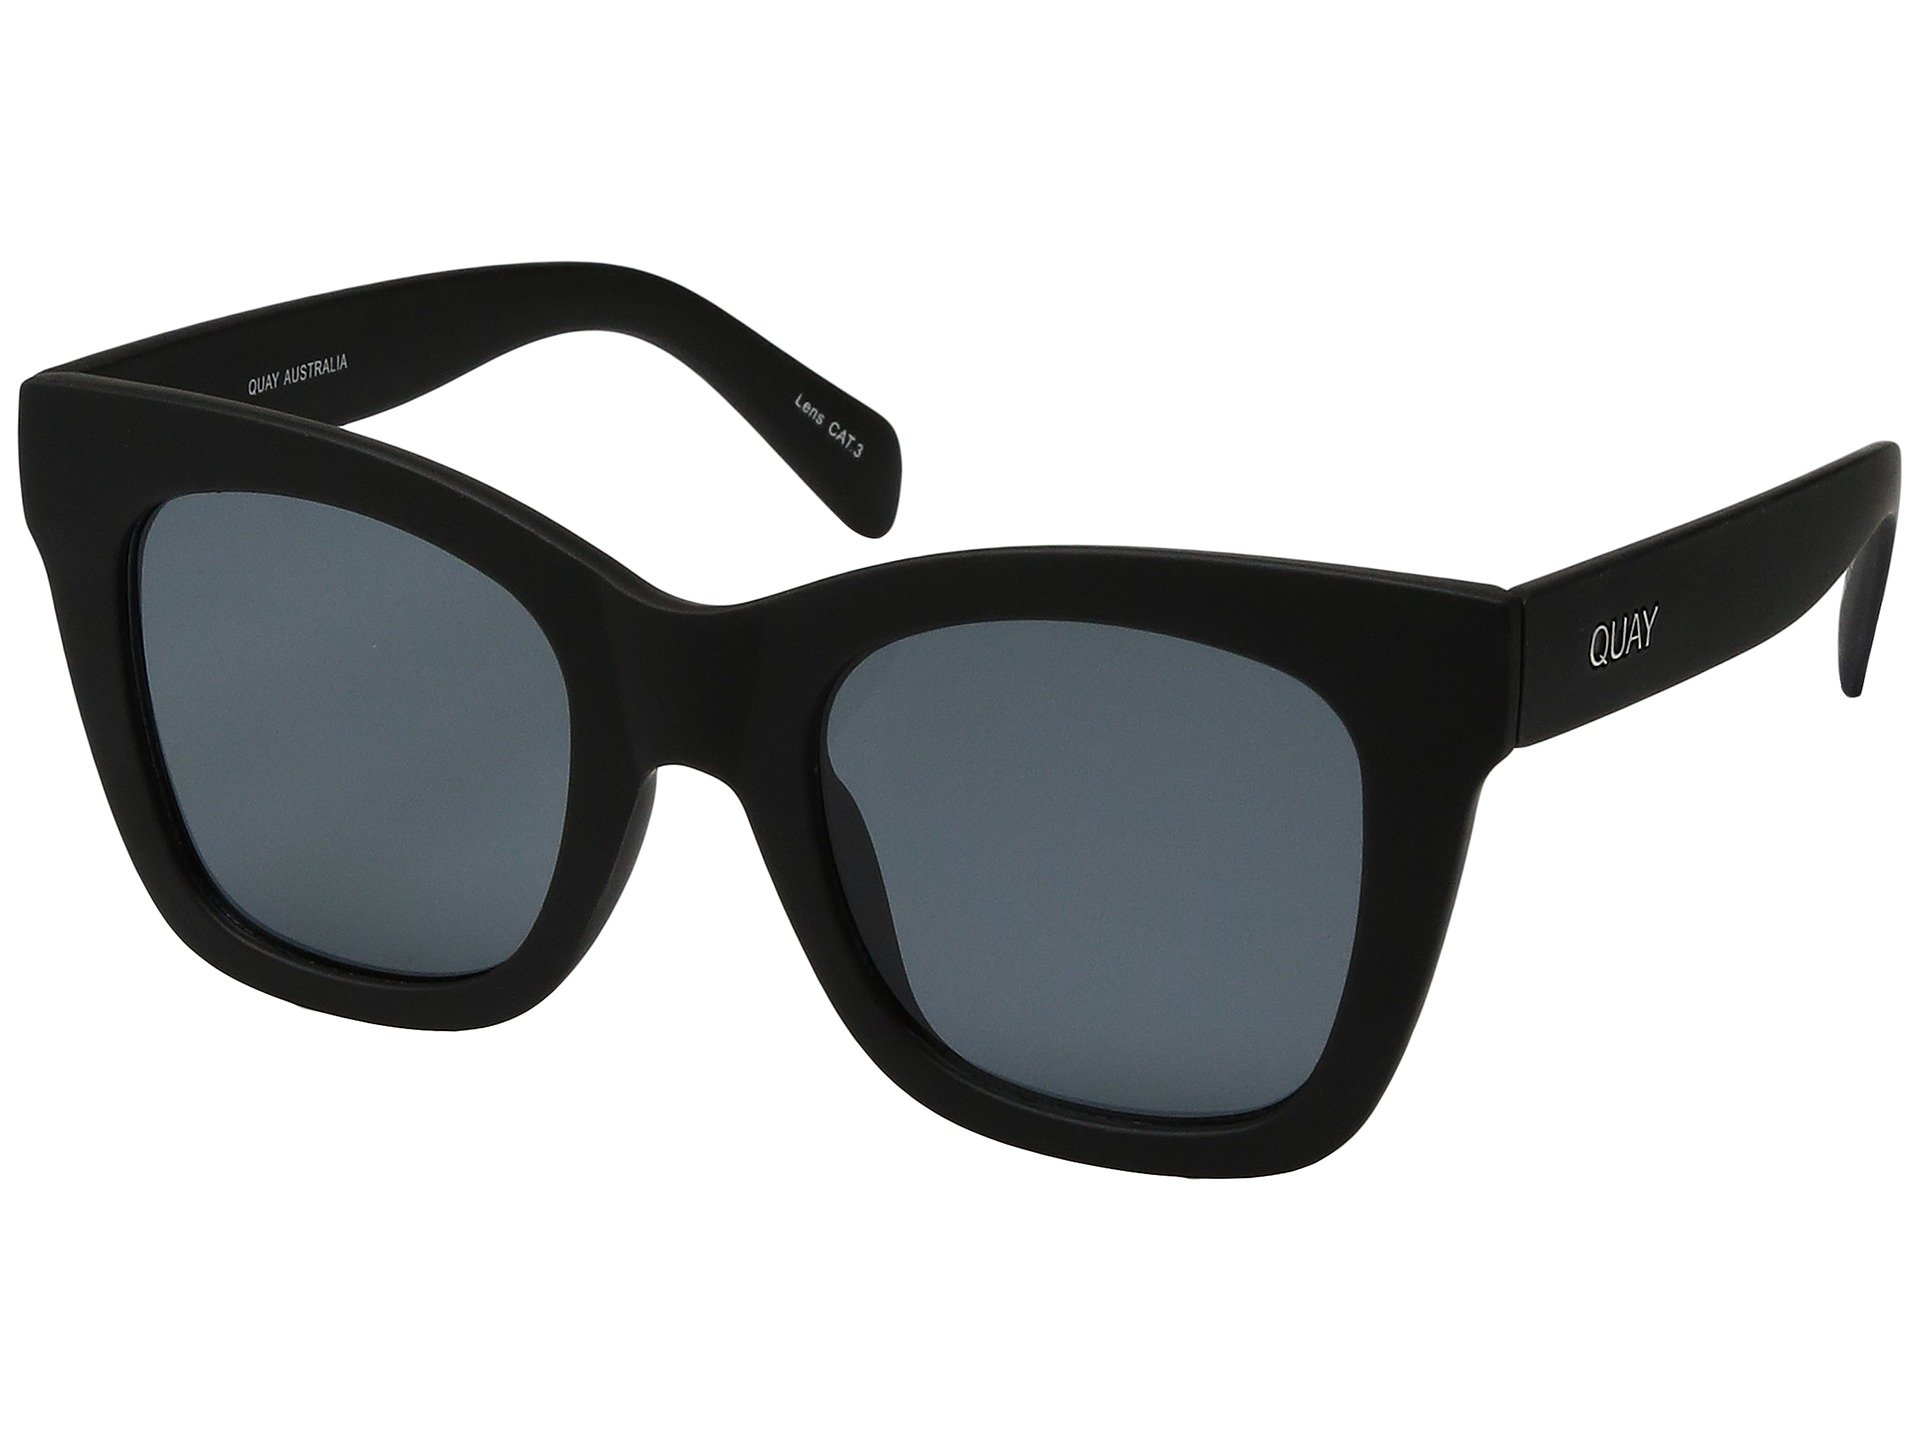 Quay Women's After Hours Sunglasses, Black/Smoke, One Size by Quay